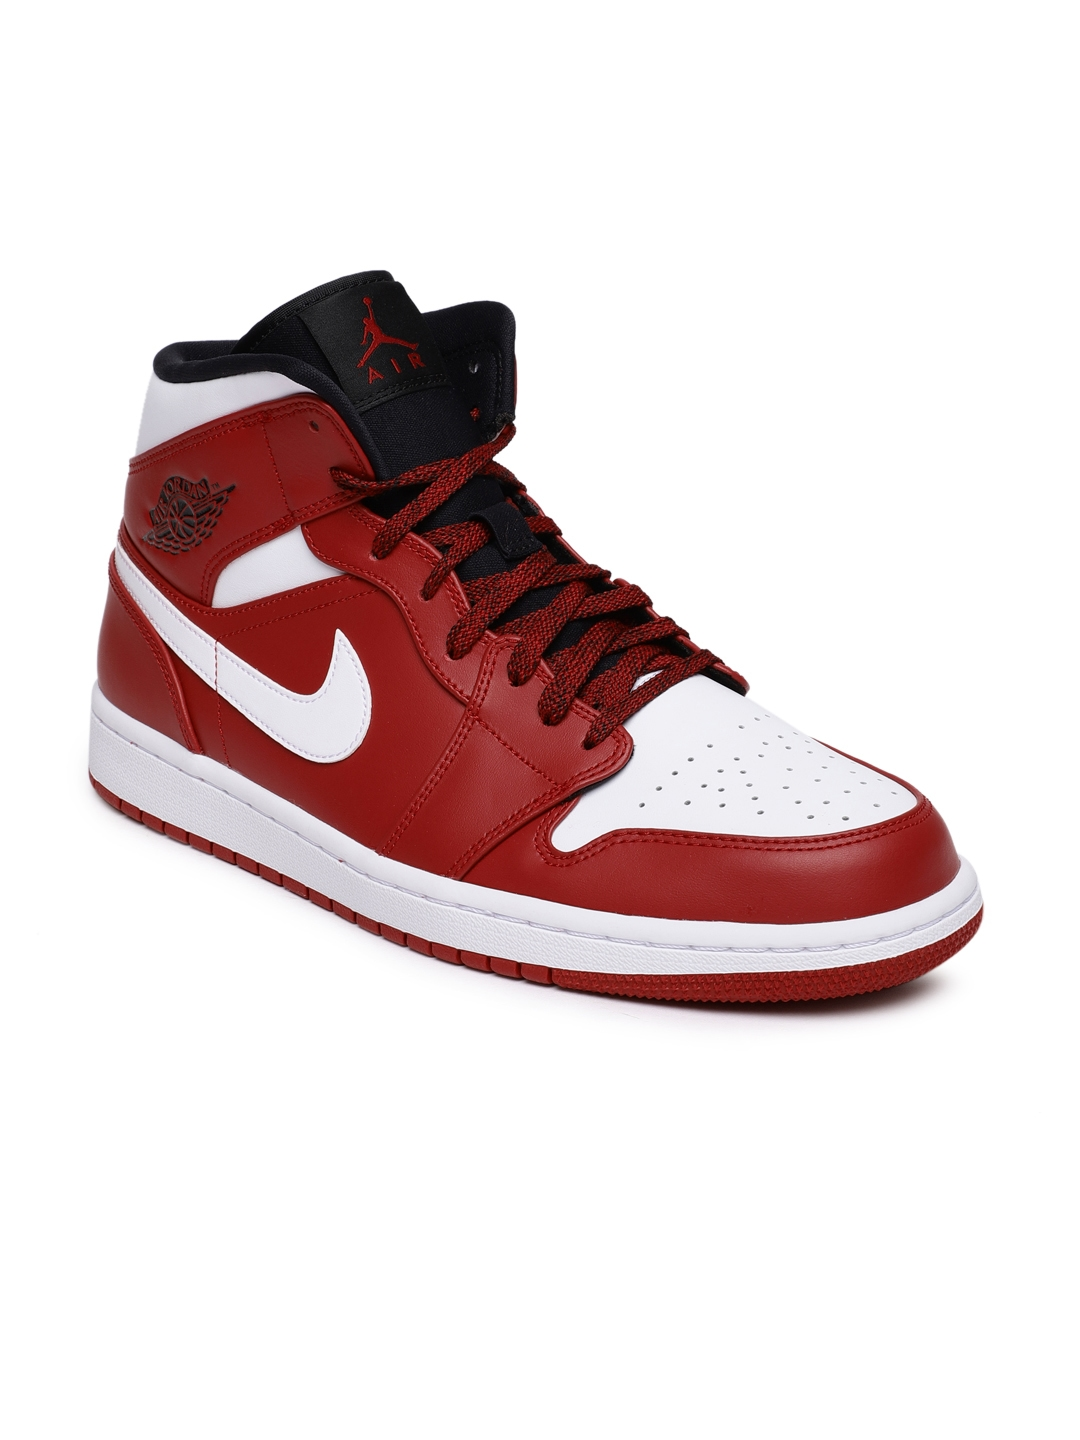 73fd50800850ac Buy Nike Men Red   White Air Jordan 1 MID Leather Basketball Shoes ...